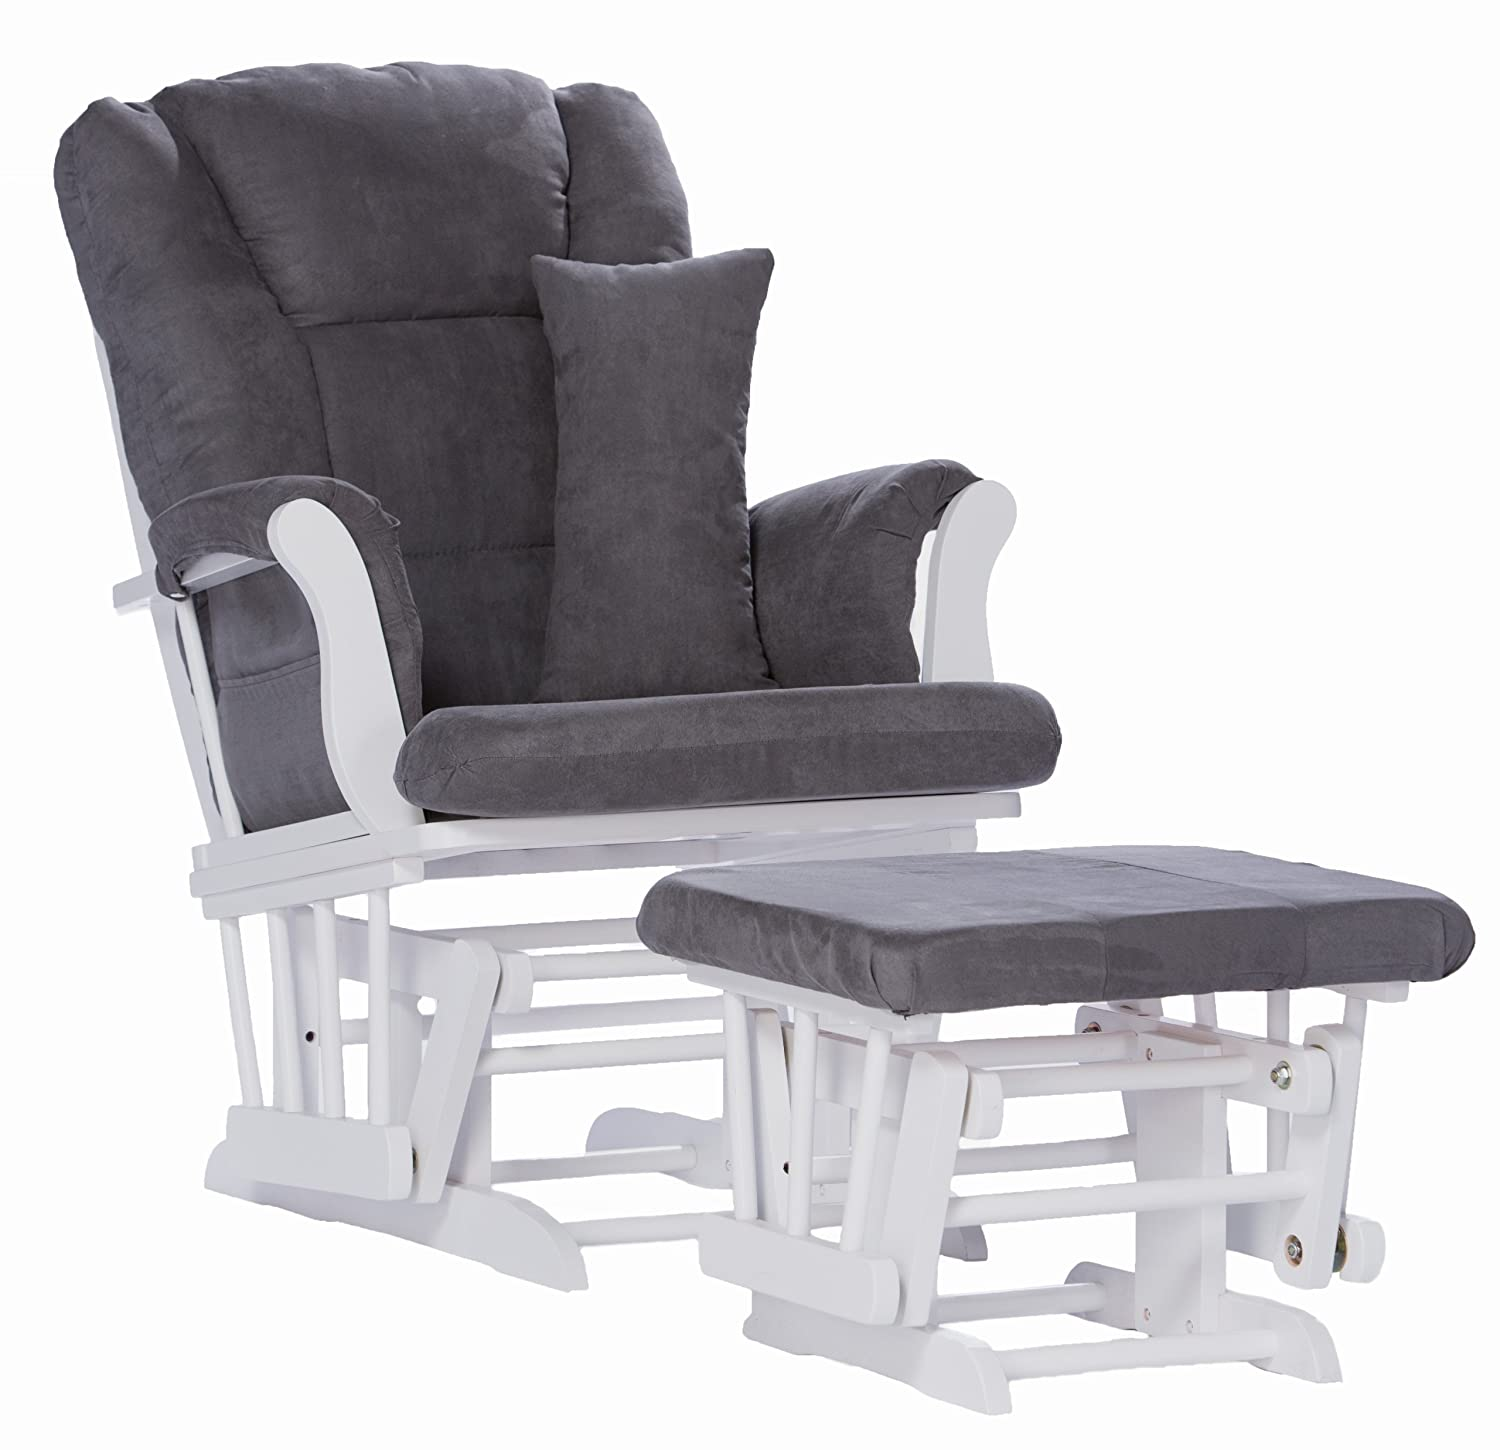 Amazon.com: Stork Craft Tuscany Custom Glider And Ottoman With Lumbar  Pillow, White/Grey: Baby